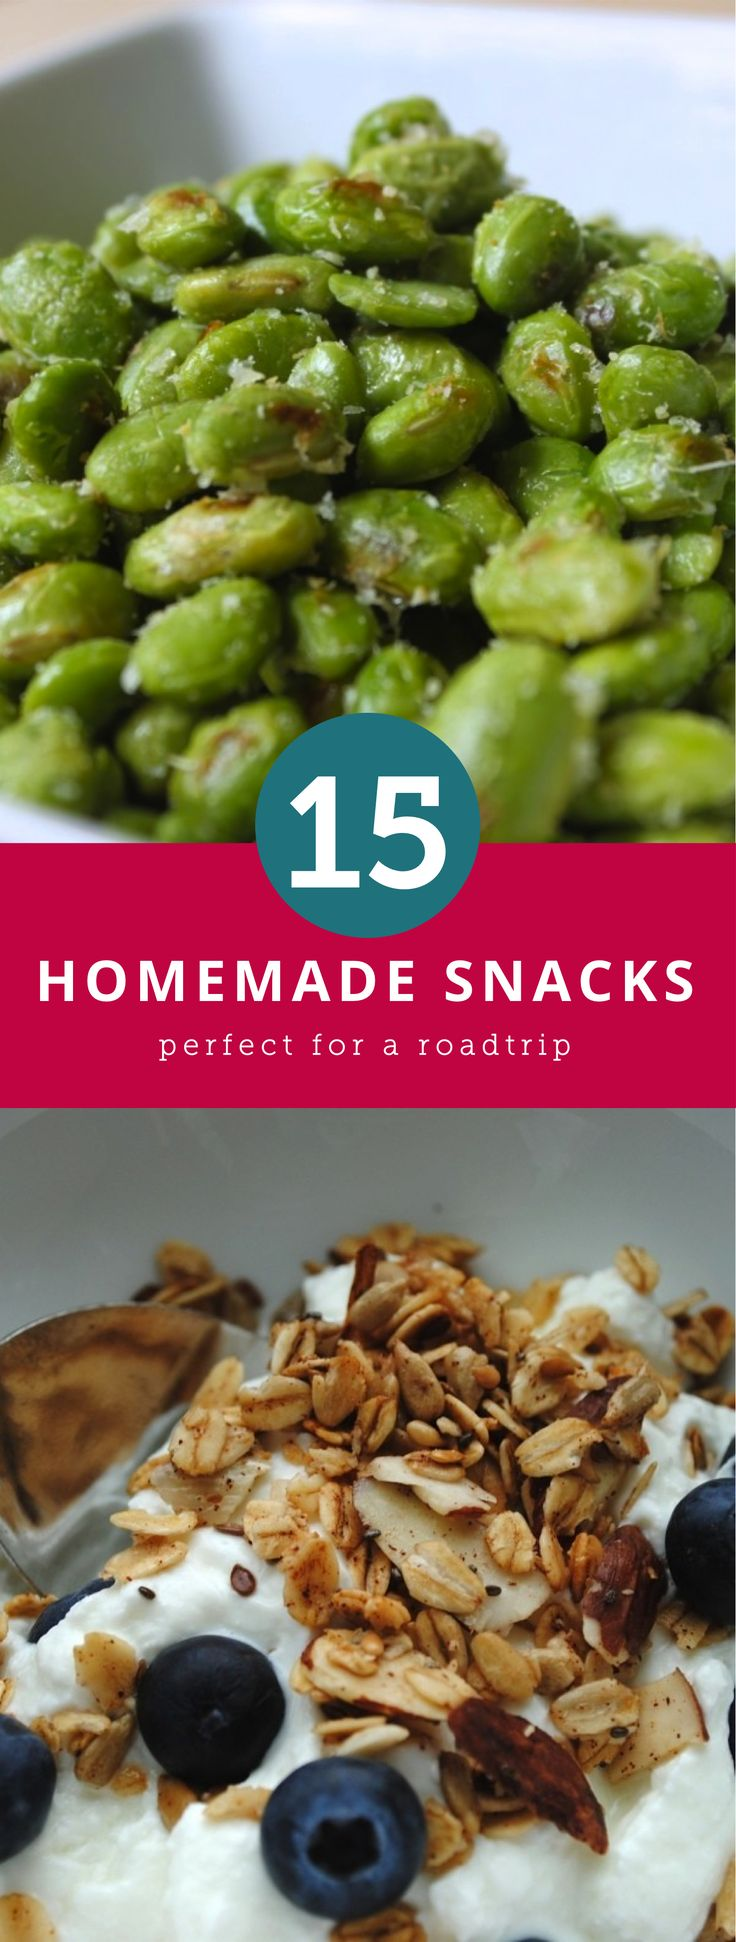 15 Homemade Snacks To Pack For Your Road Trip